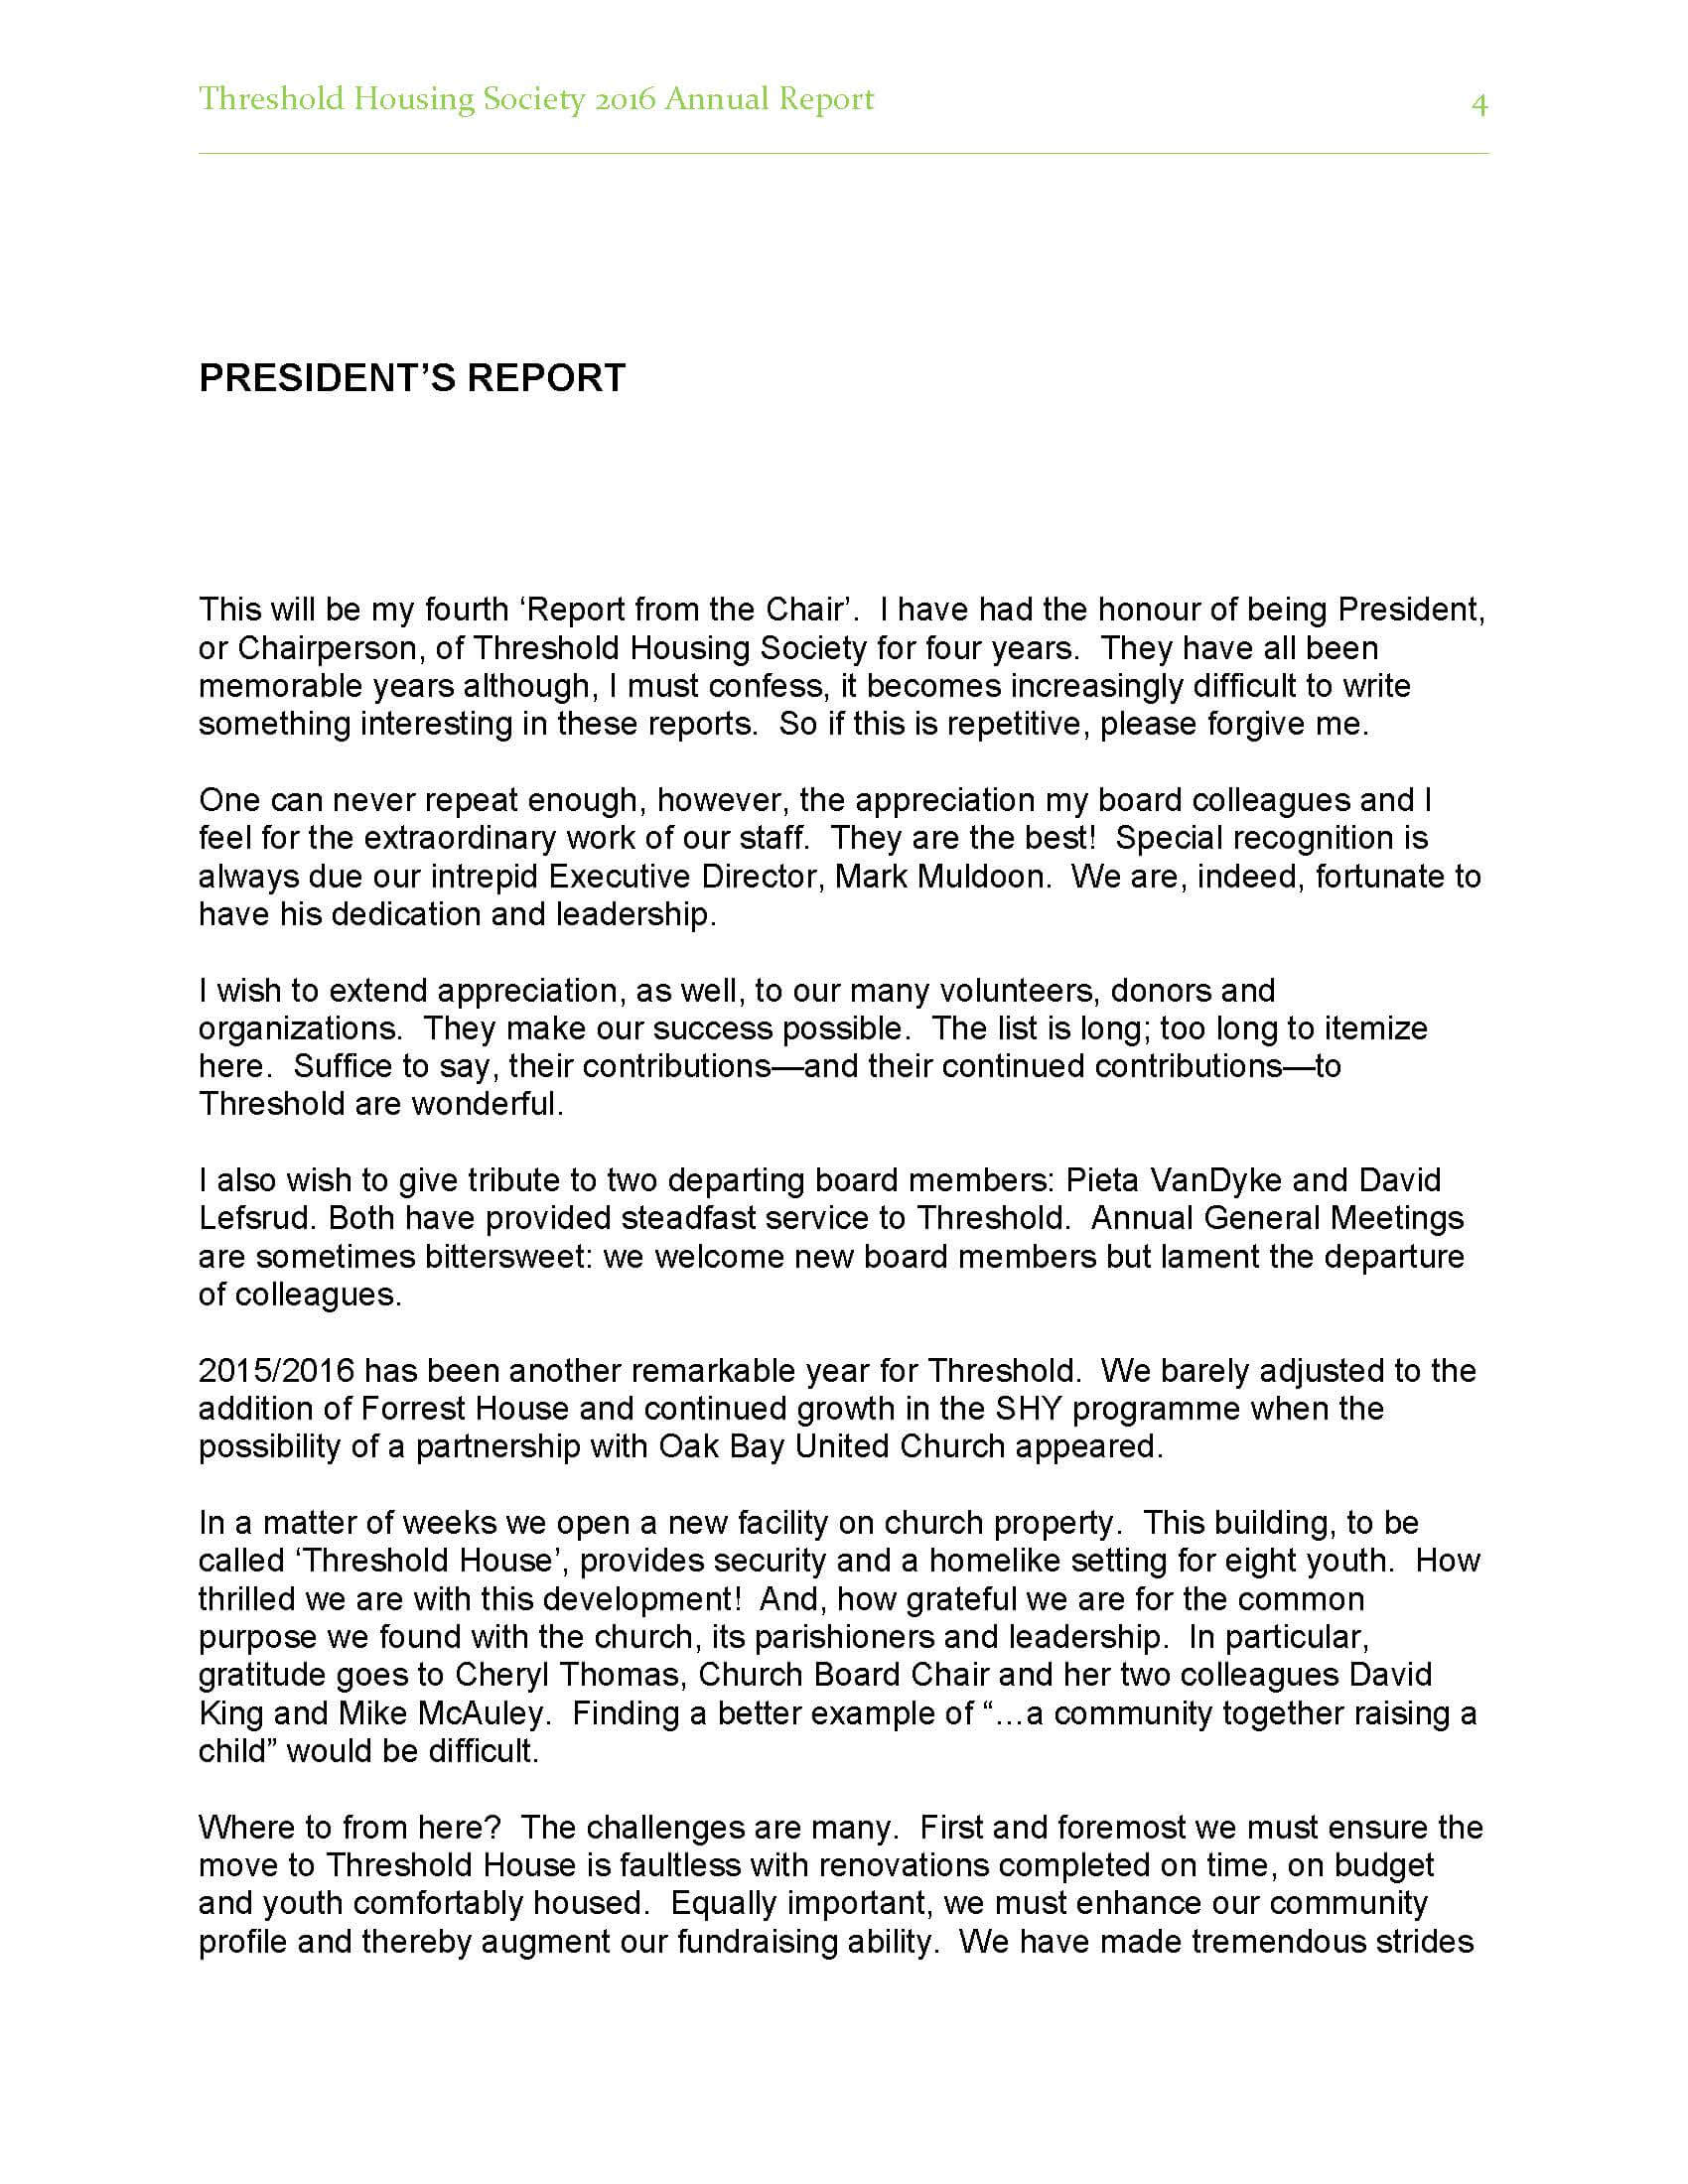 2017/2018 Annual Report – Threshold Housing For Chairman's Annual Report Template